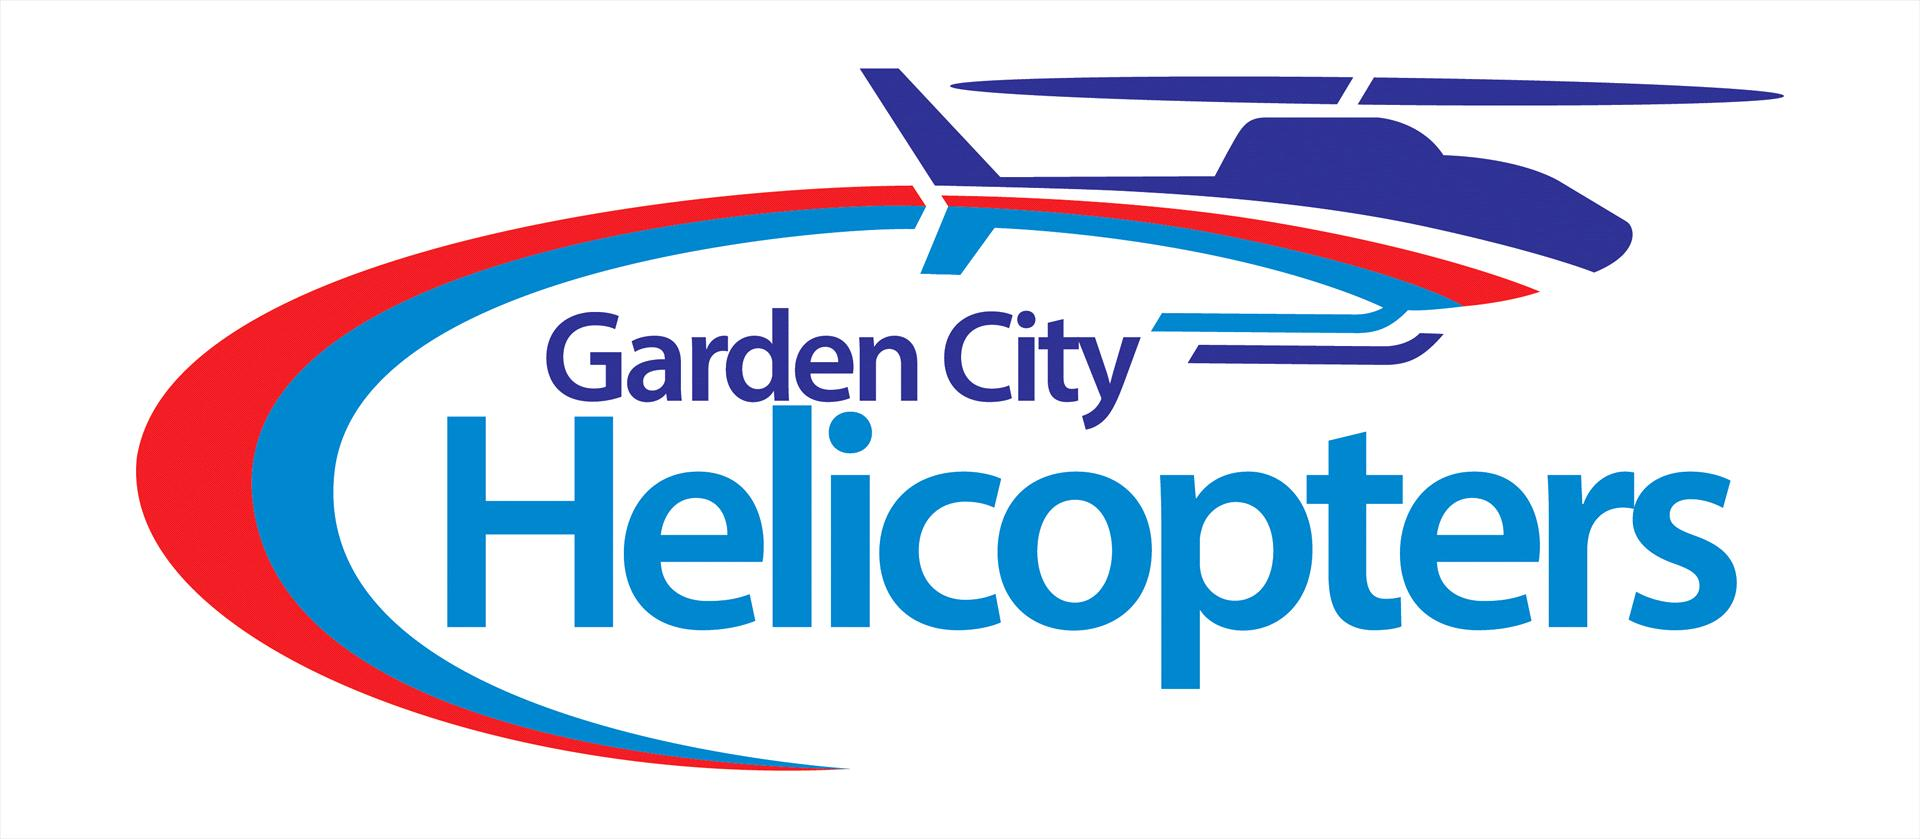 Garden City Helicopters - Christchurch